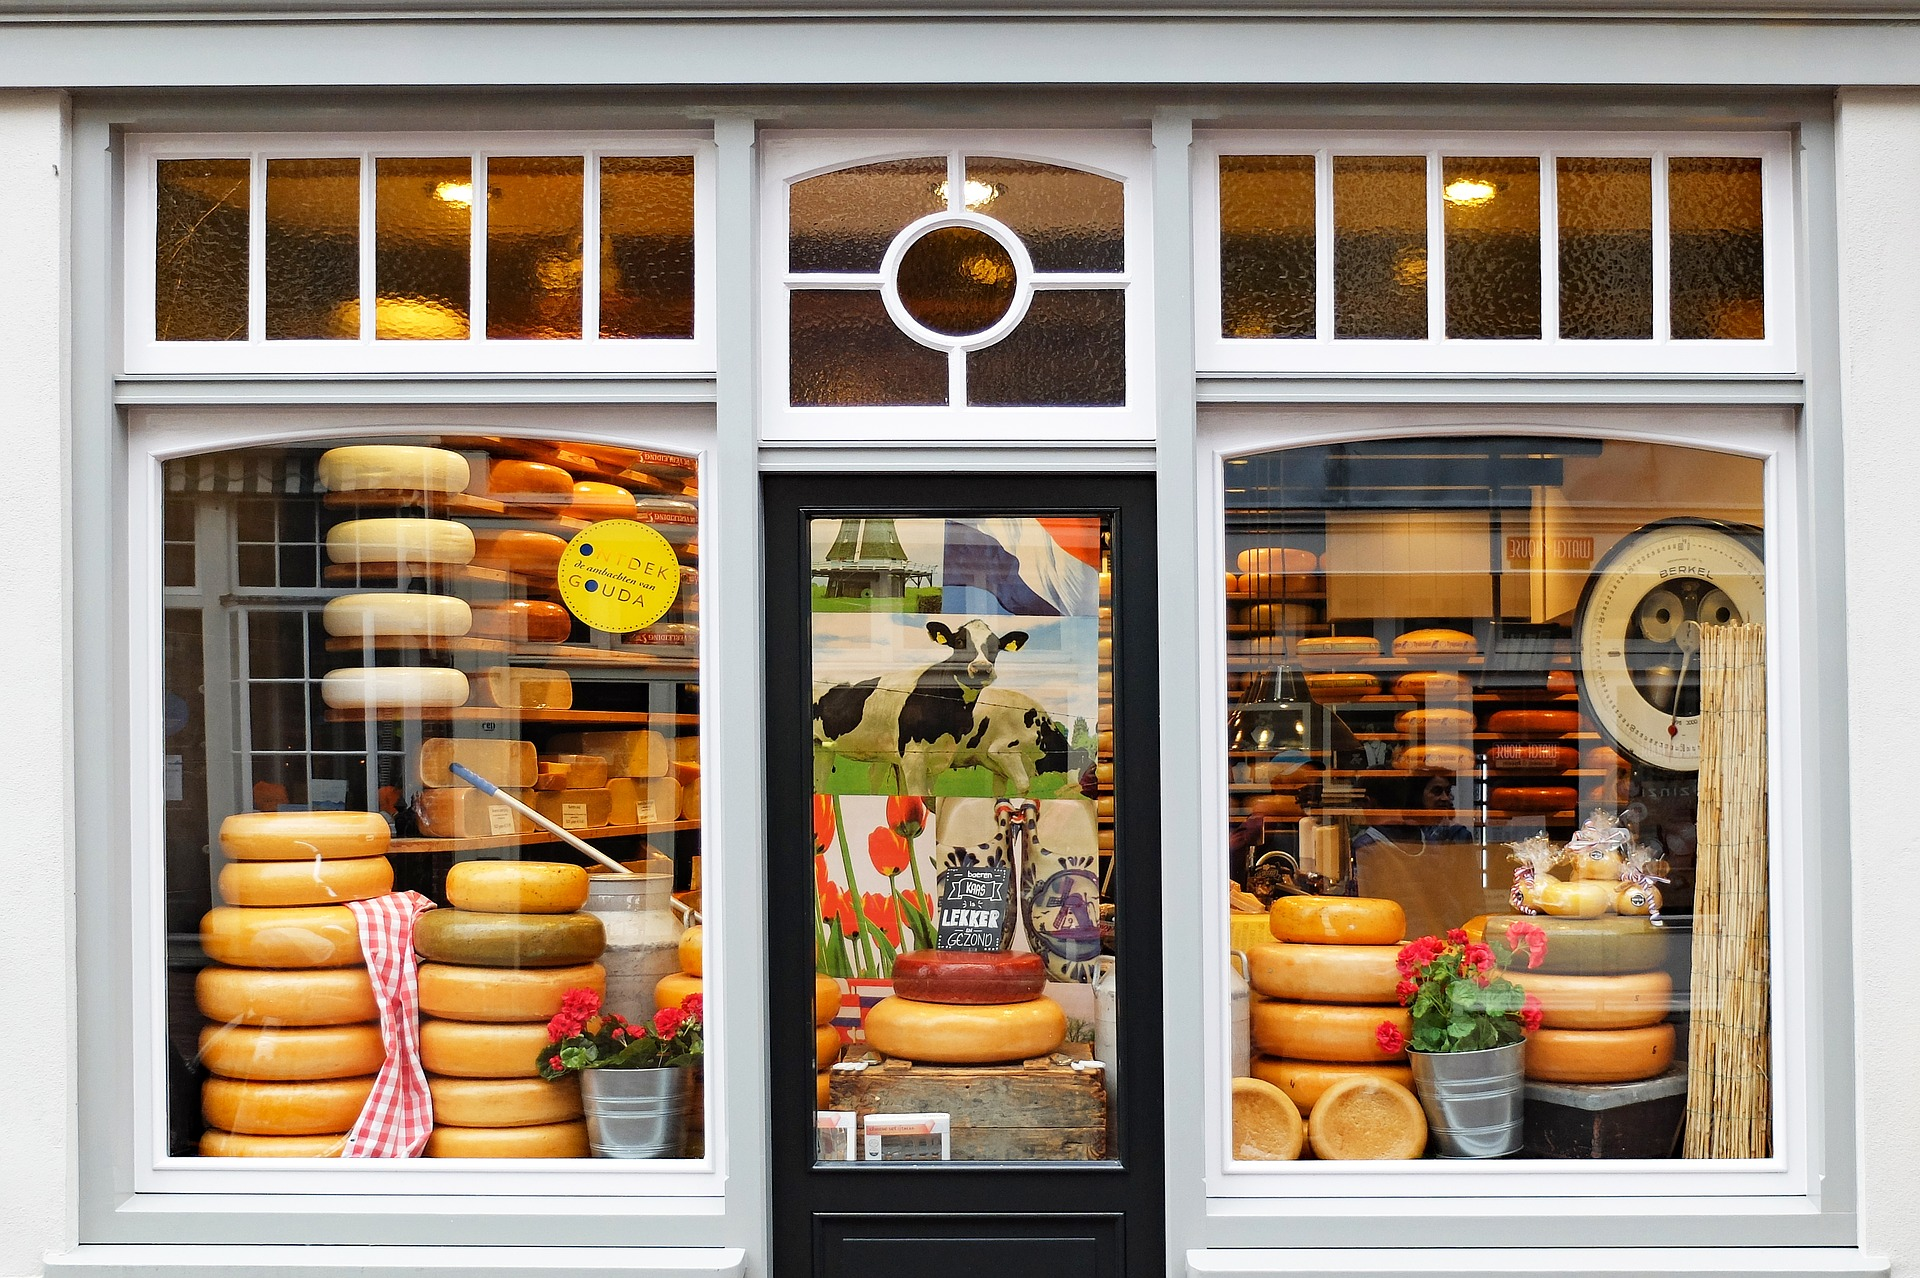 Image of a cheese shop in the Netherlands